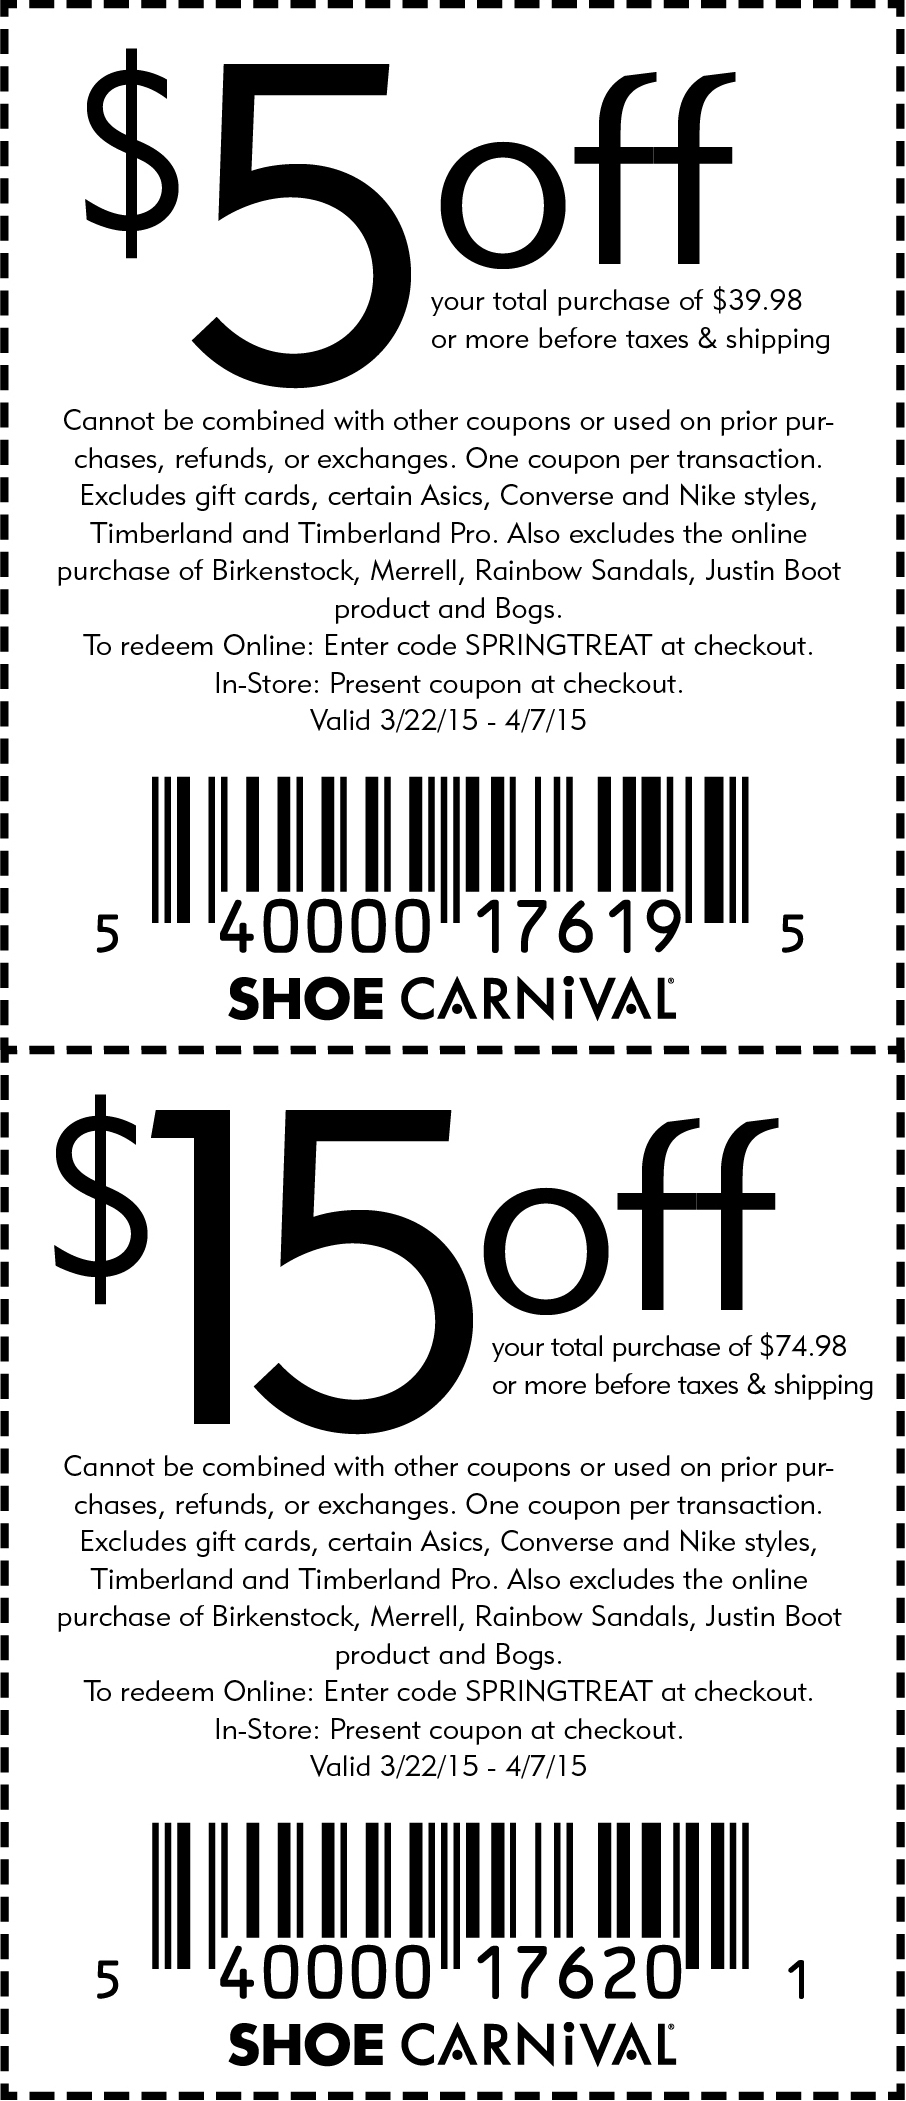 New Dsw Coupons   Wedding Inspirations - Free Printable Coupons For Dsw Shoes